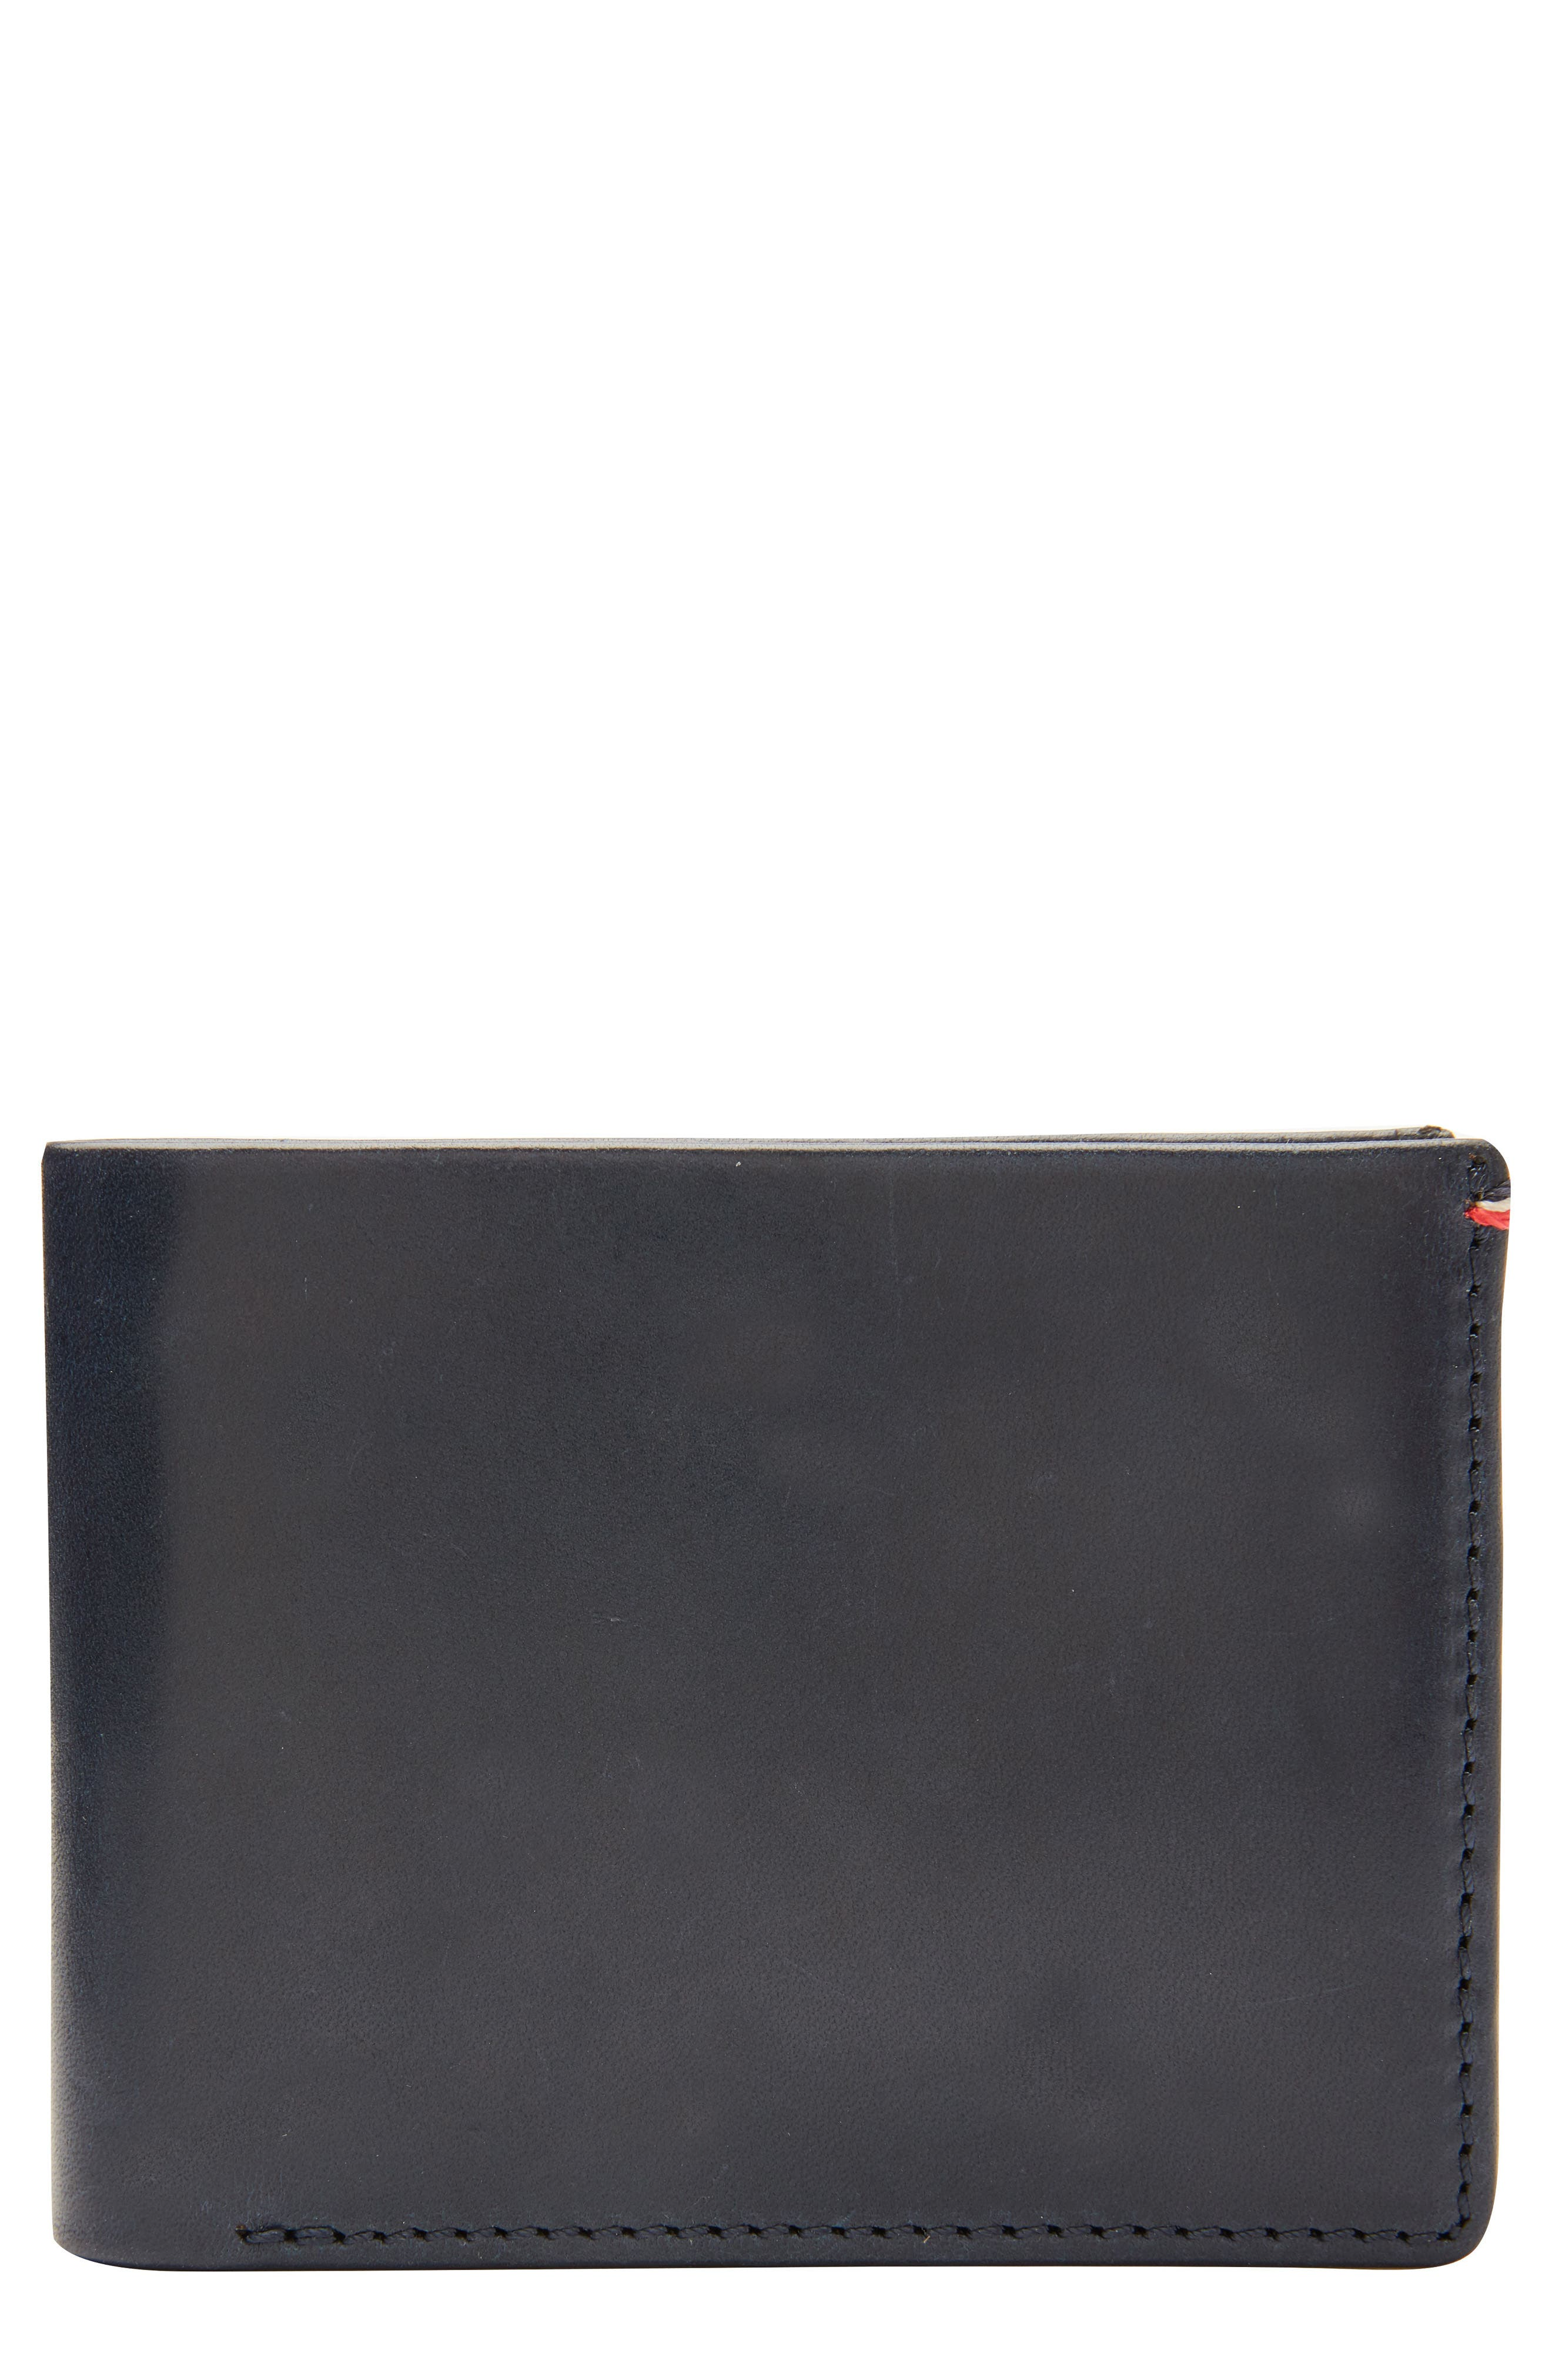 Main Image - Jack Mason Core Leather Wallet